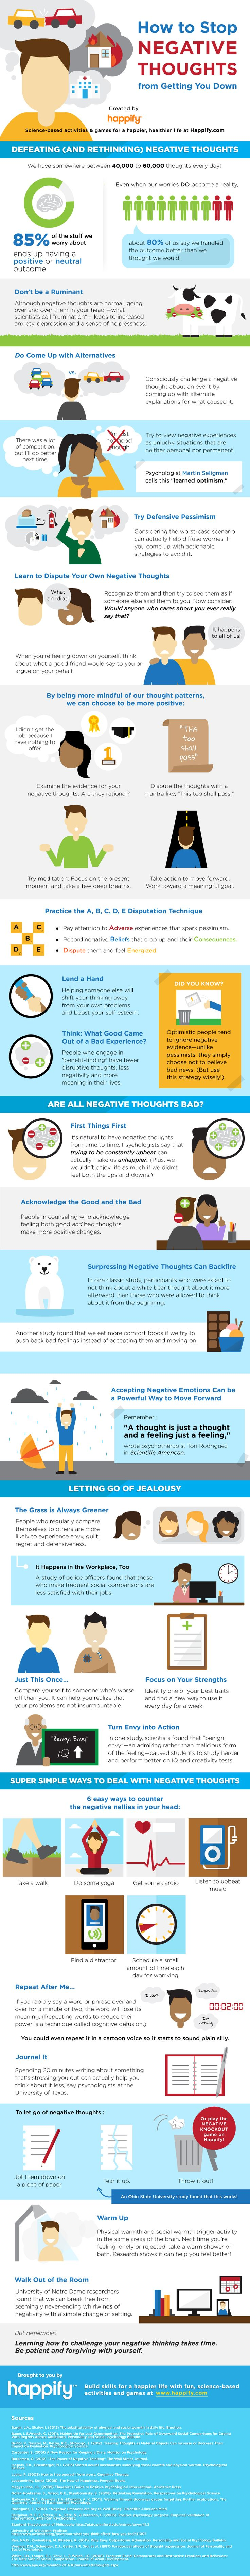 Effective Ways To Stop Negative Thoughts From Getting You Down